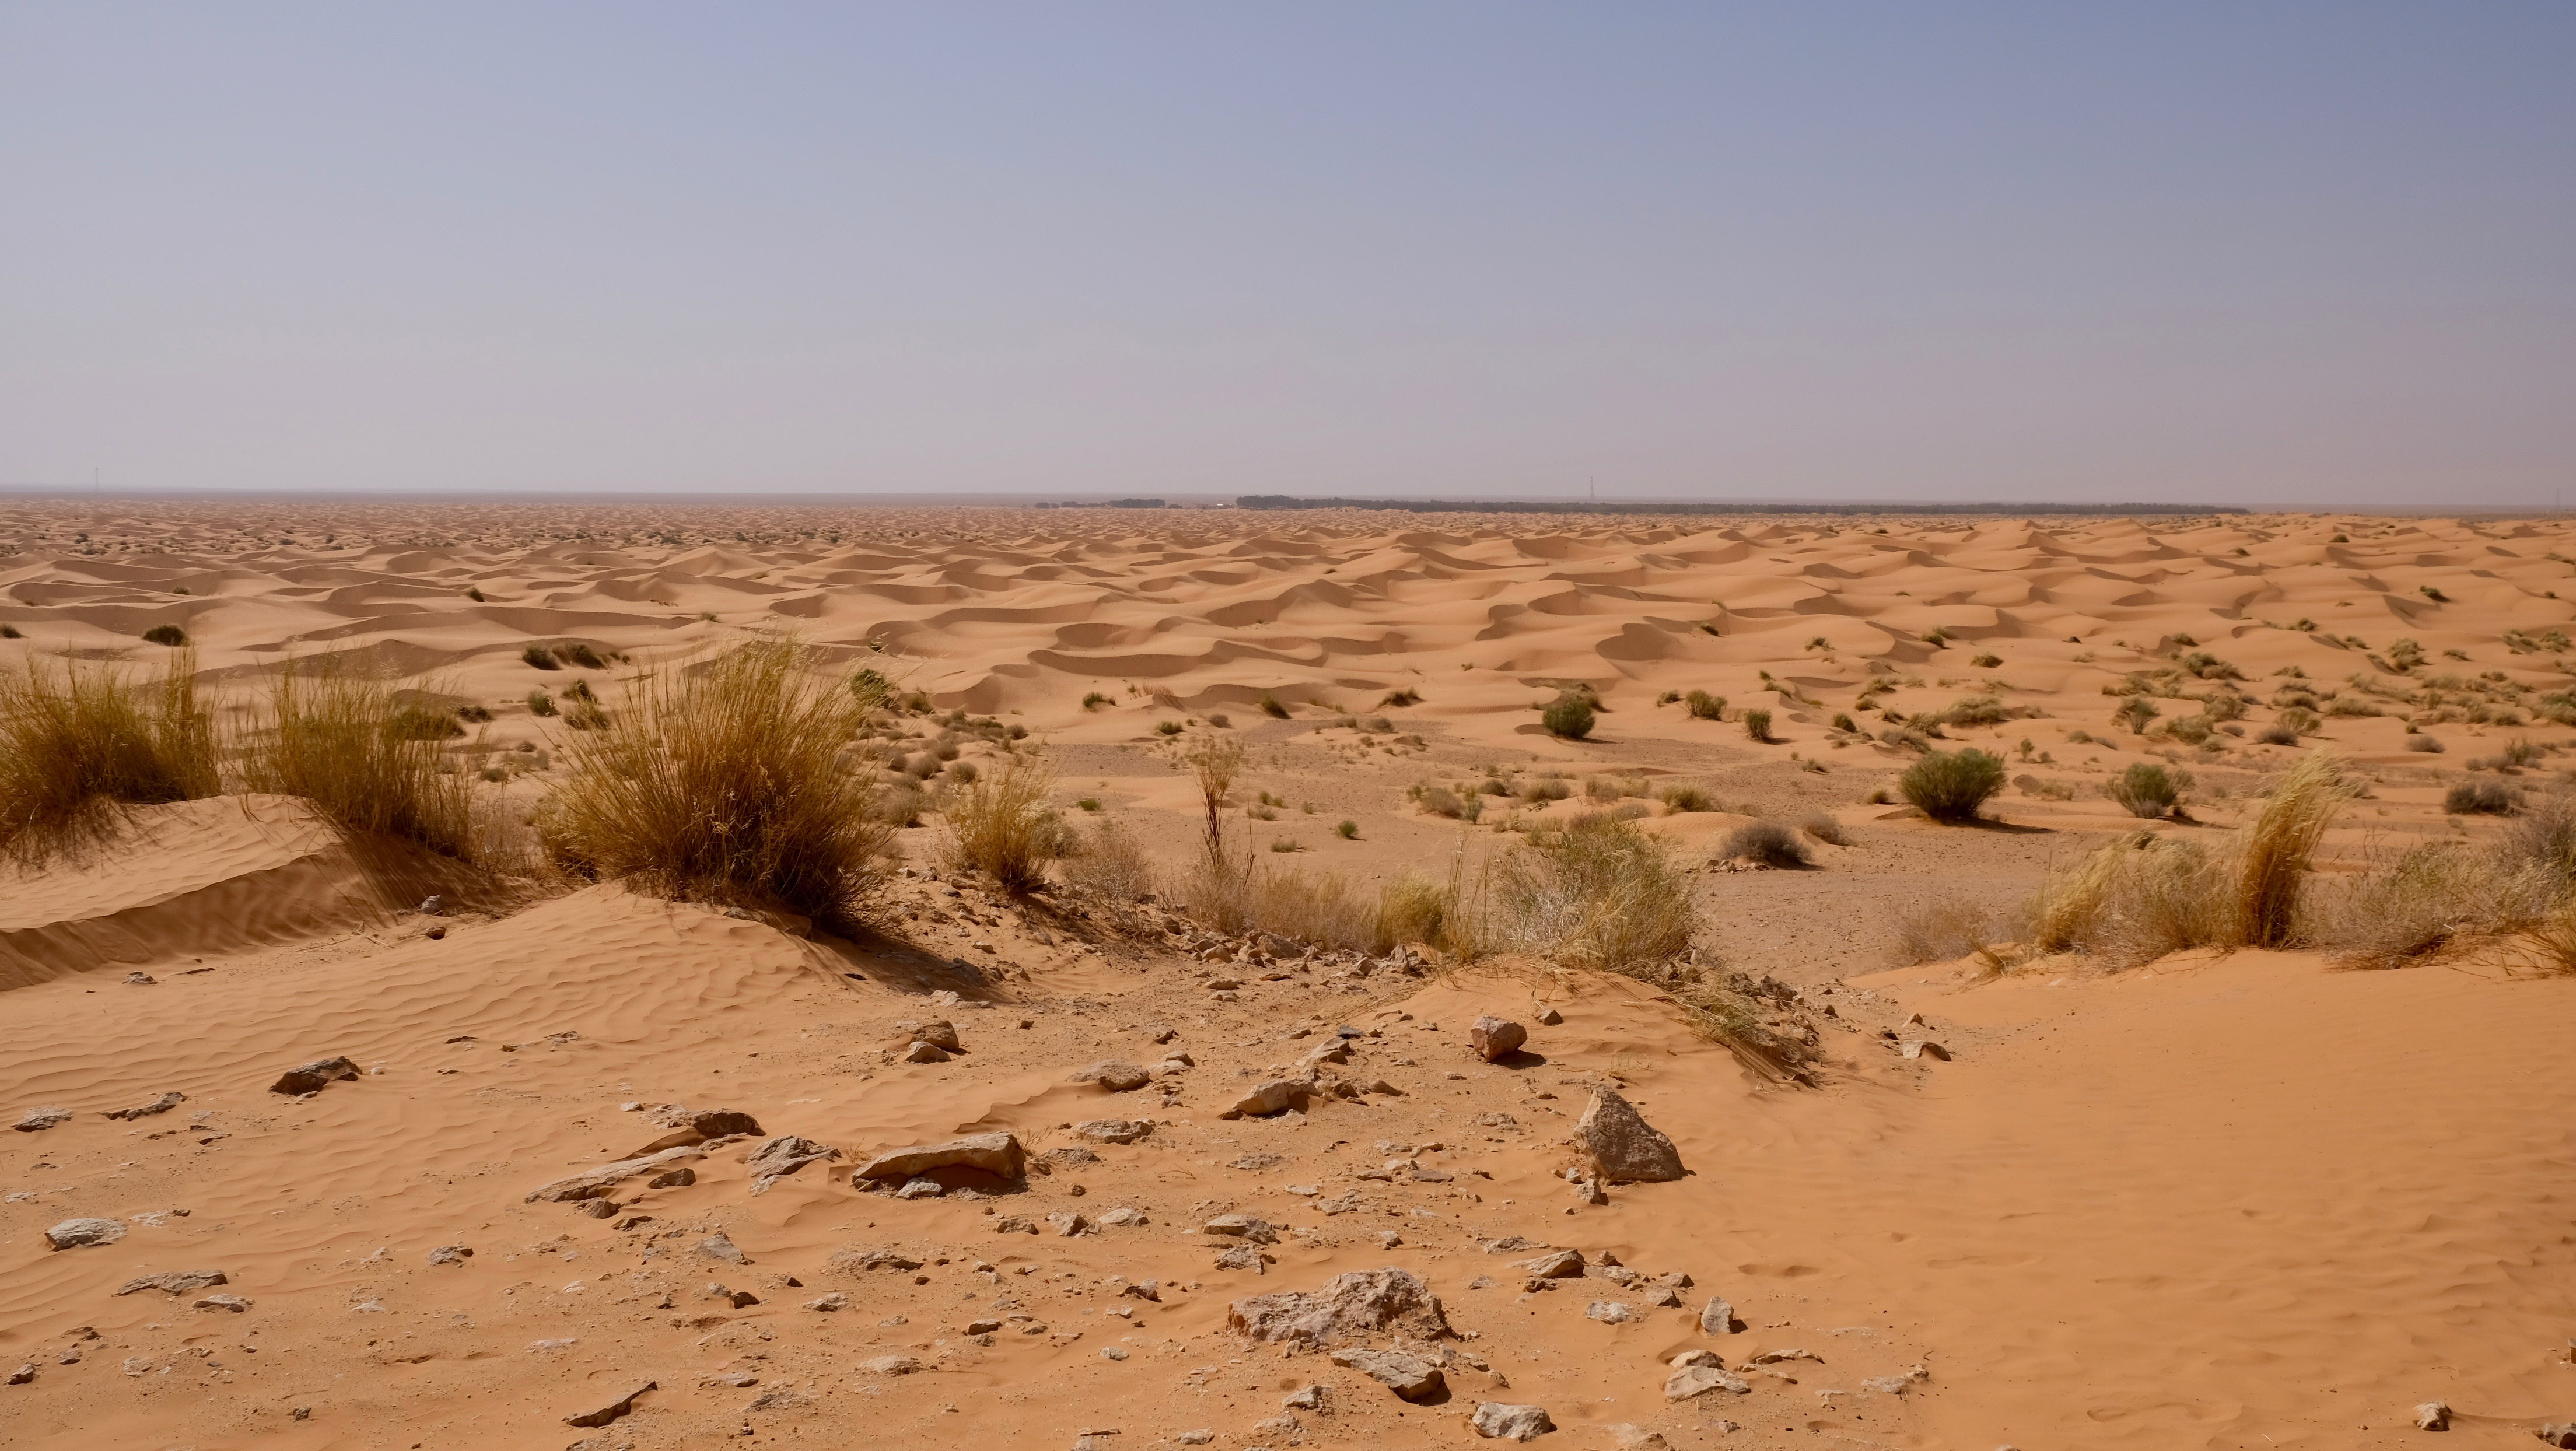 See the Sand Dunes in Ksar Ghilane